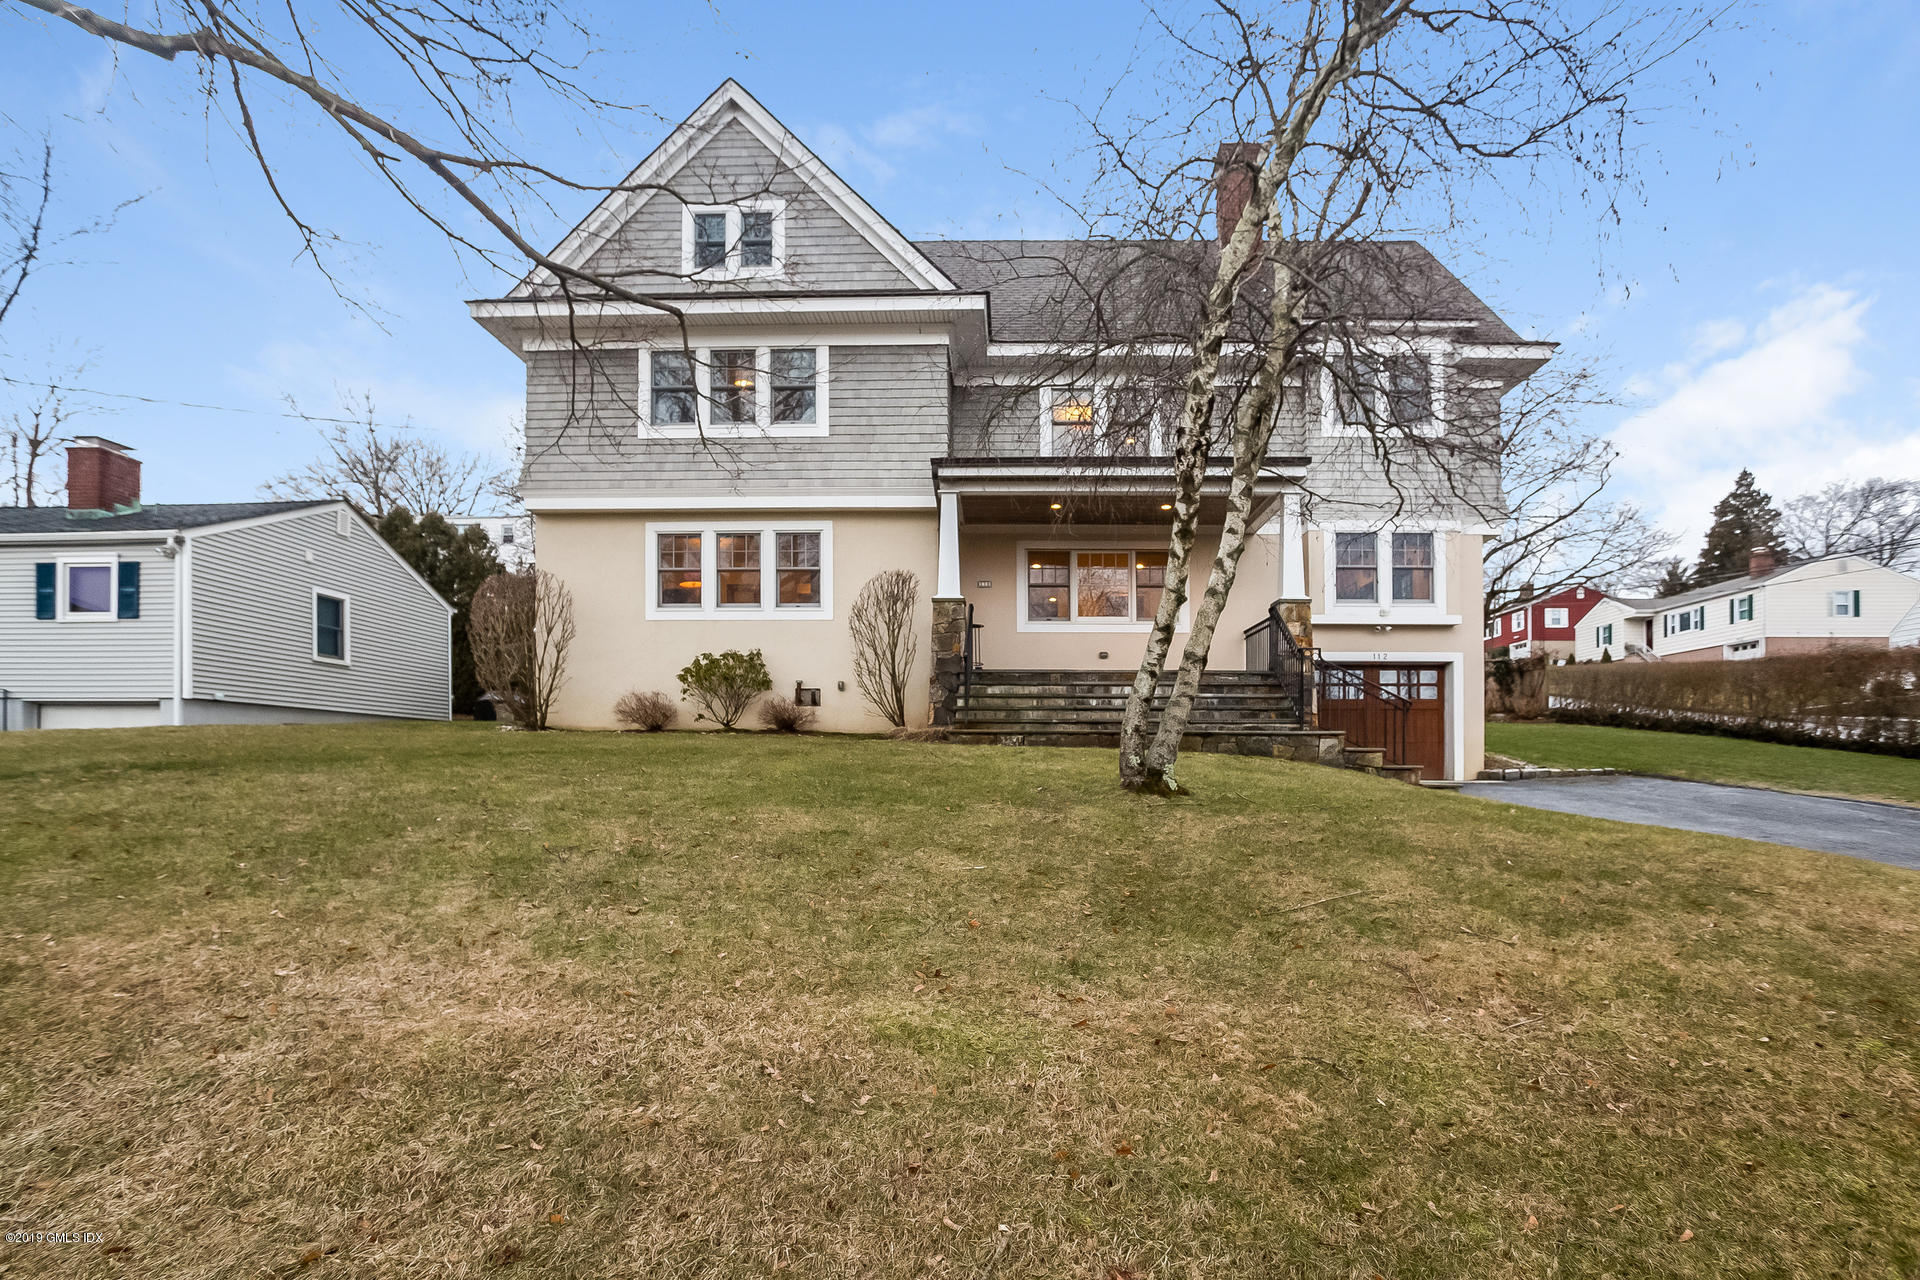 112 Pilgrim Drive,Greenwich,Connecticut 06831,4 Bedrooms Bedrooms,3 BathroomsBathrooms,Single family,Pilgrim,105346